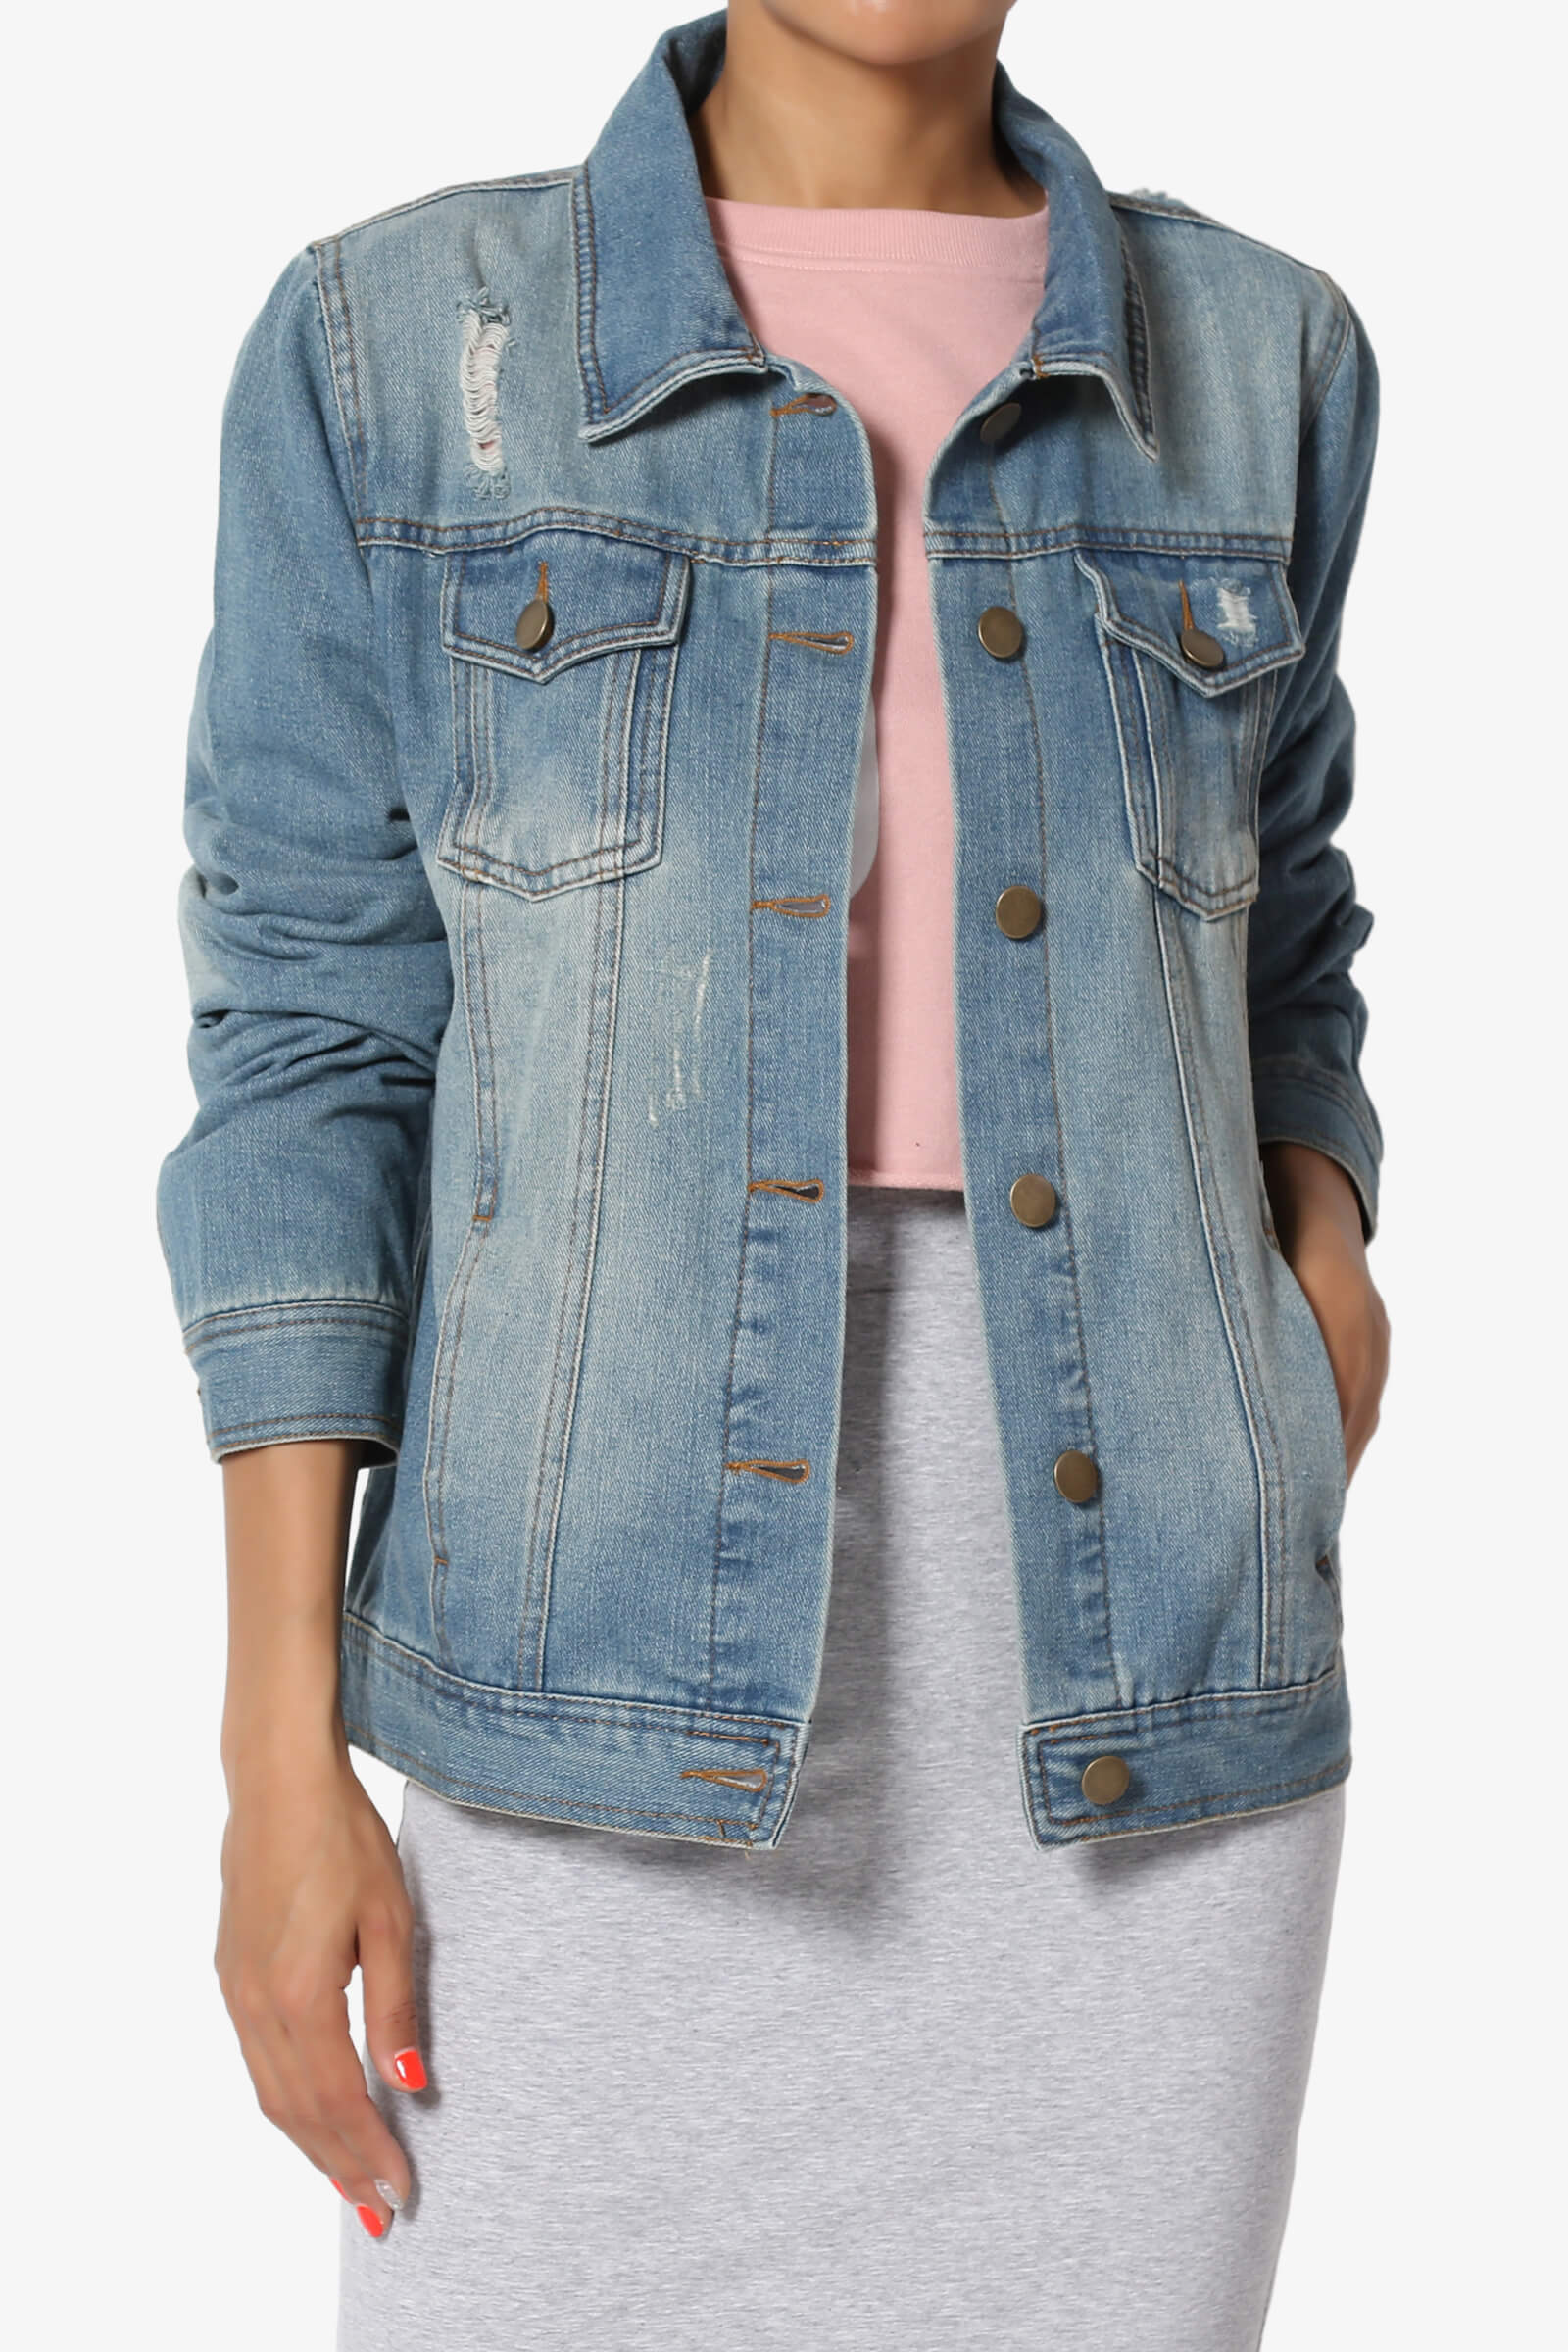 b158d426bc5d7 TheMogan Trucker Relaxed Fit Boyfriend Denim Jacket in Distressed Medium  Wash